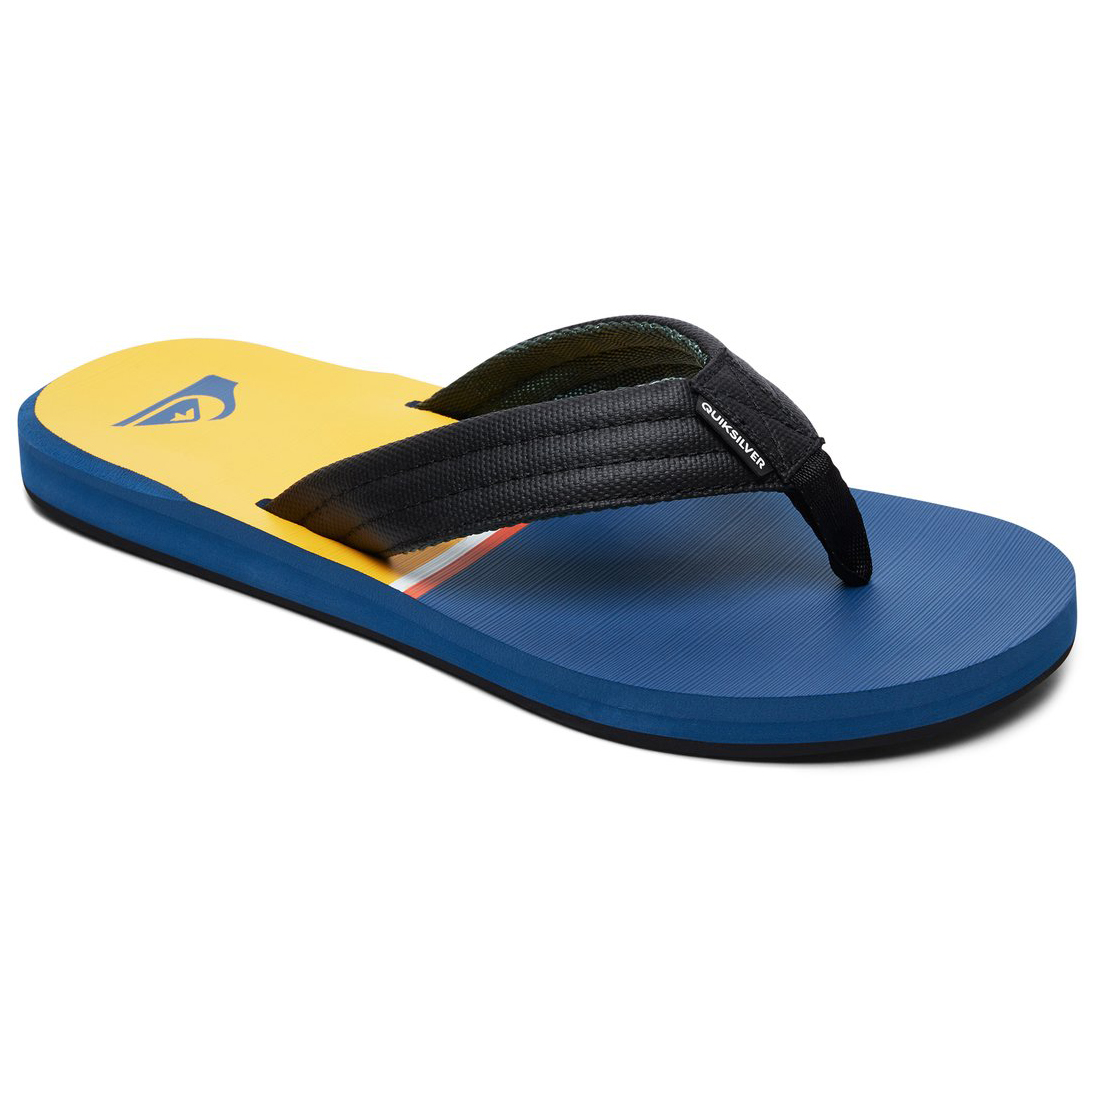 Quiksilver Men's Carver Sandals - Blue, 11